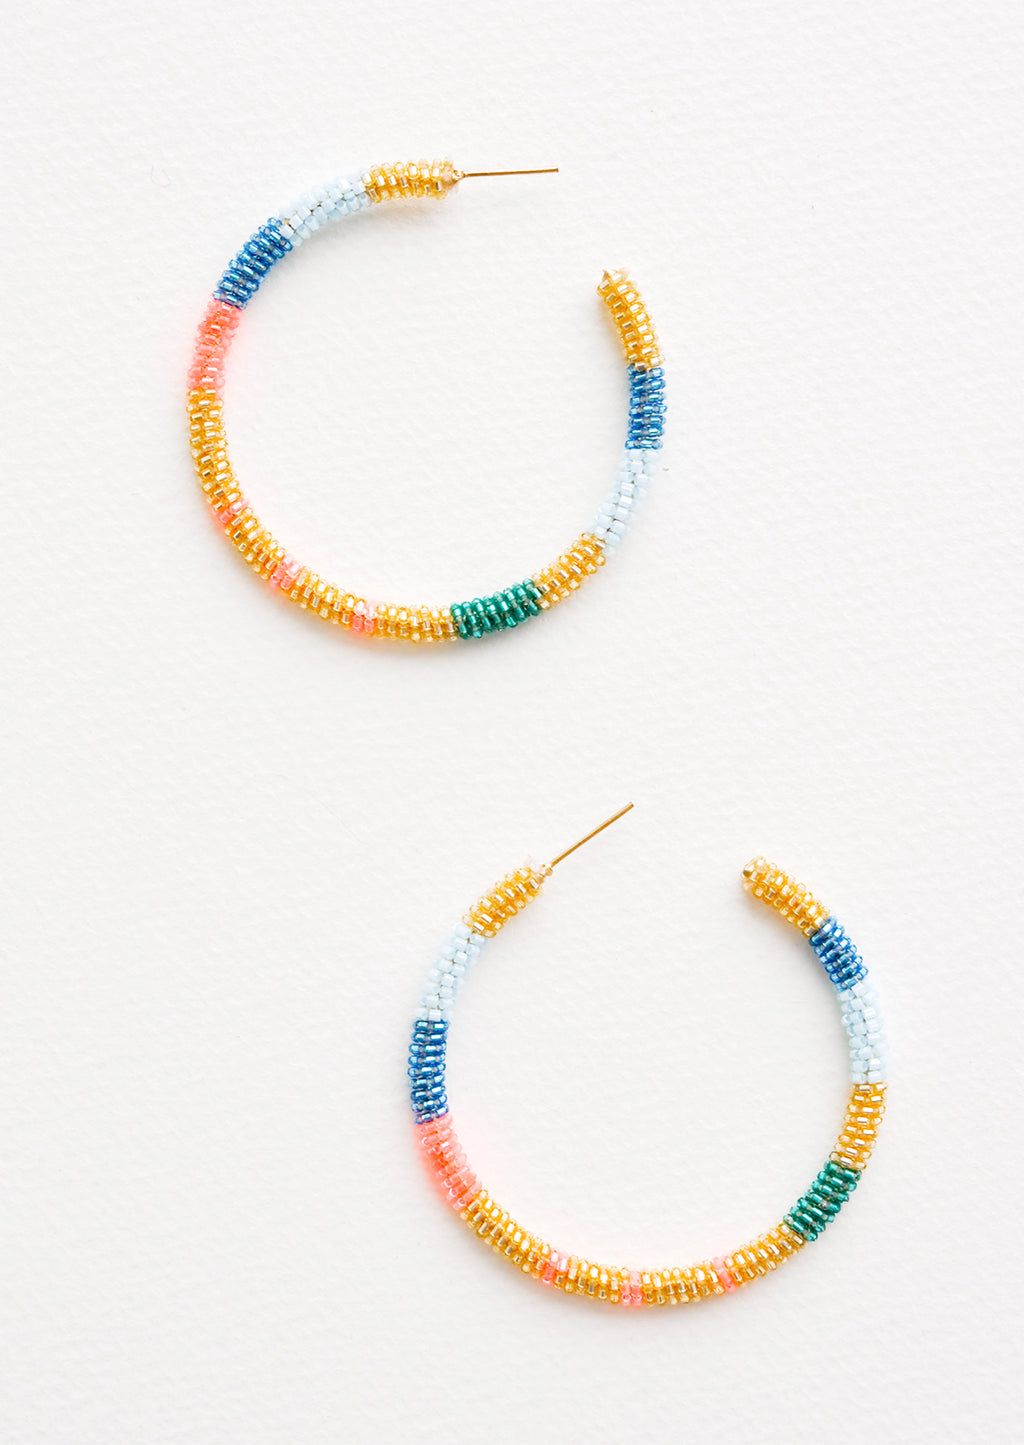 Blue / Gold Multi: Hoop earrings with blue, pink, gold and green glass beads arranged in a circle.